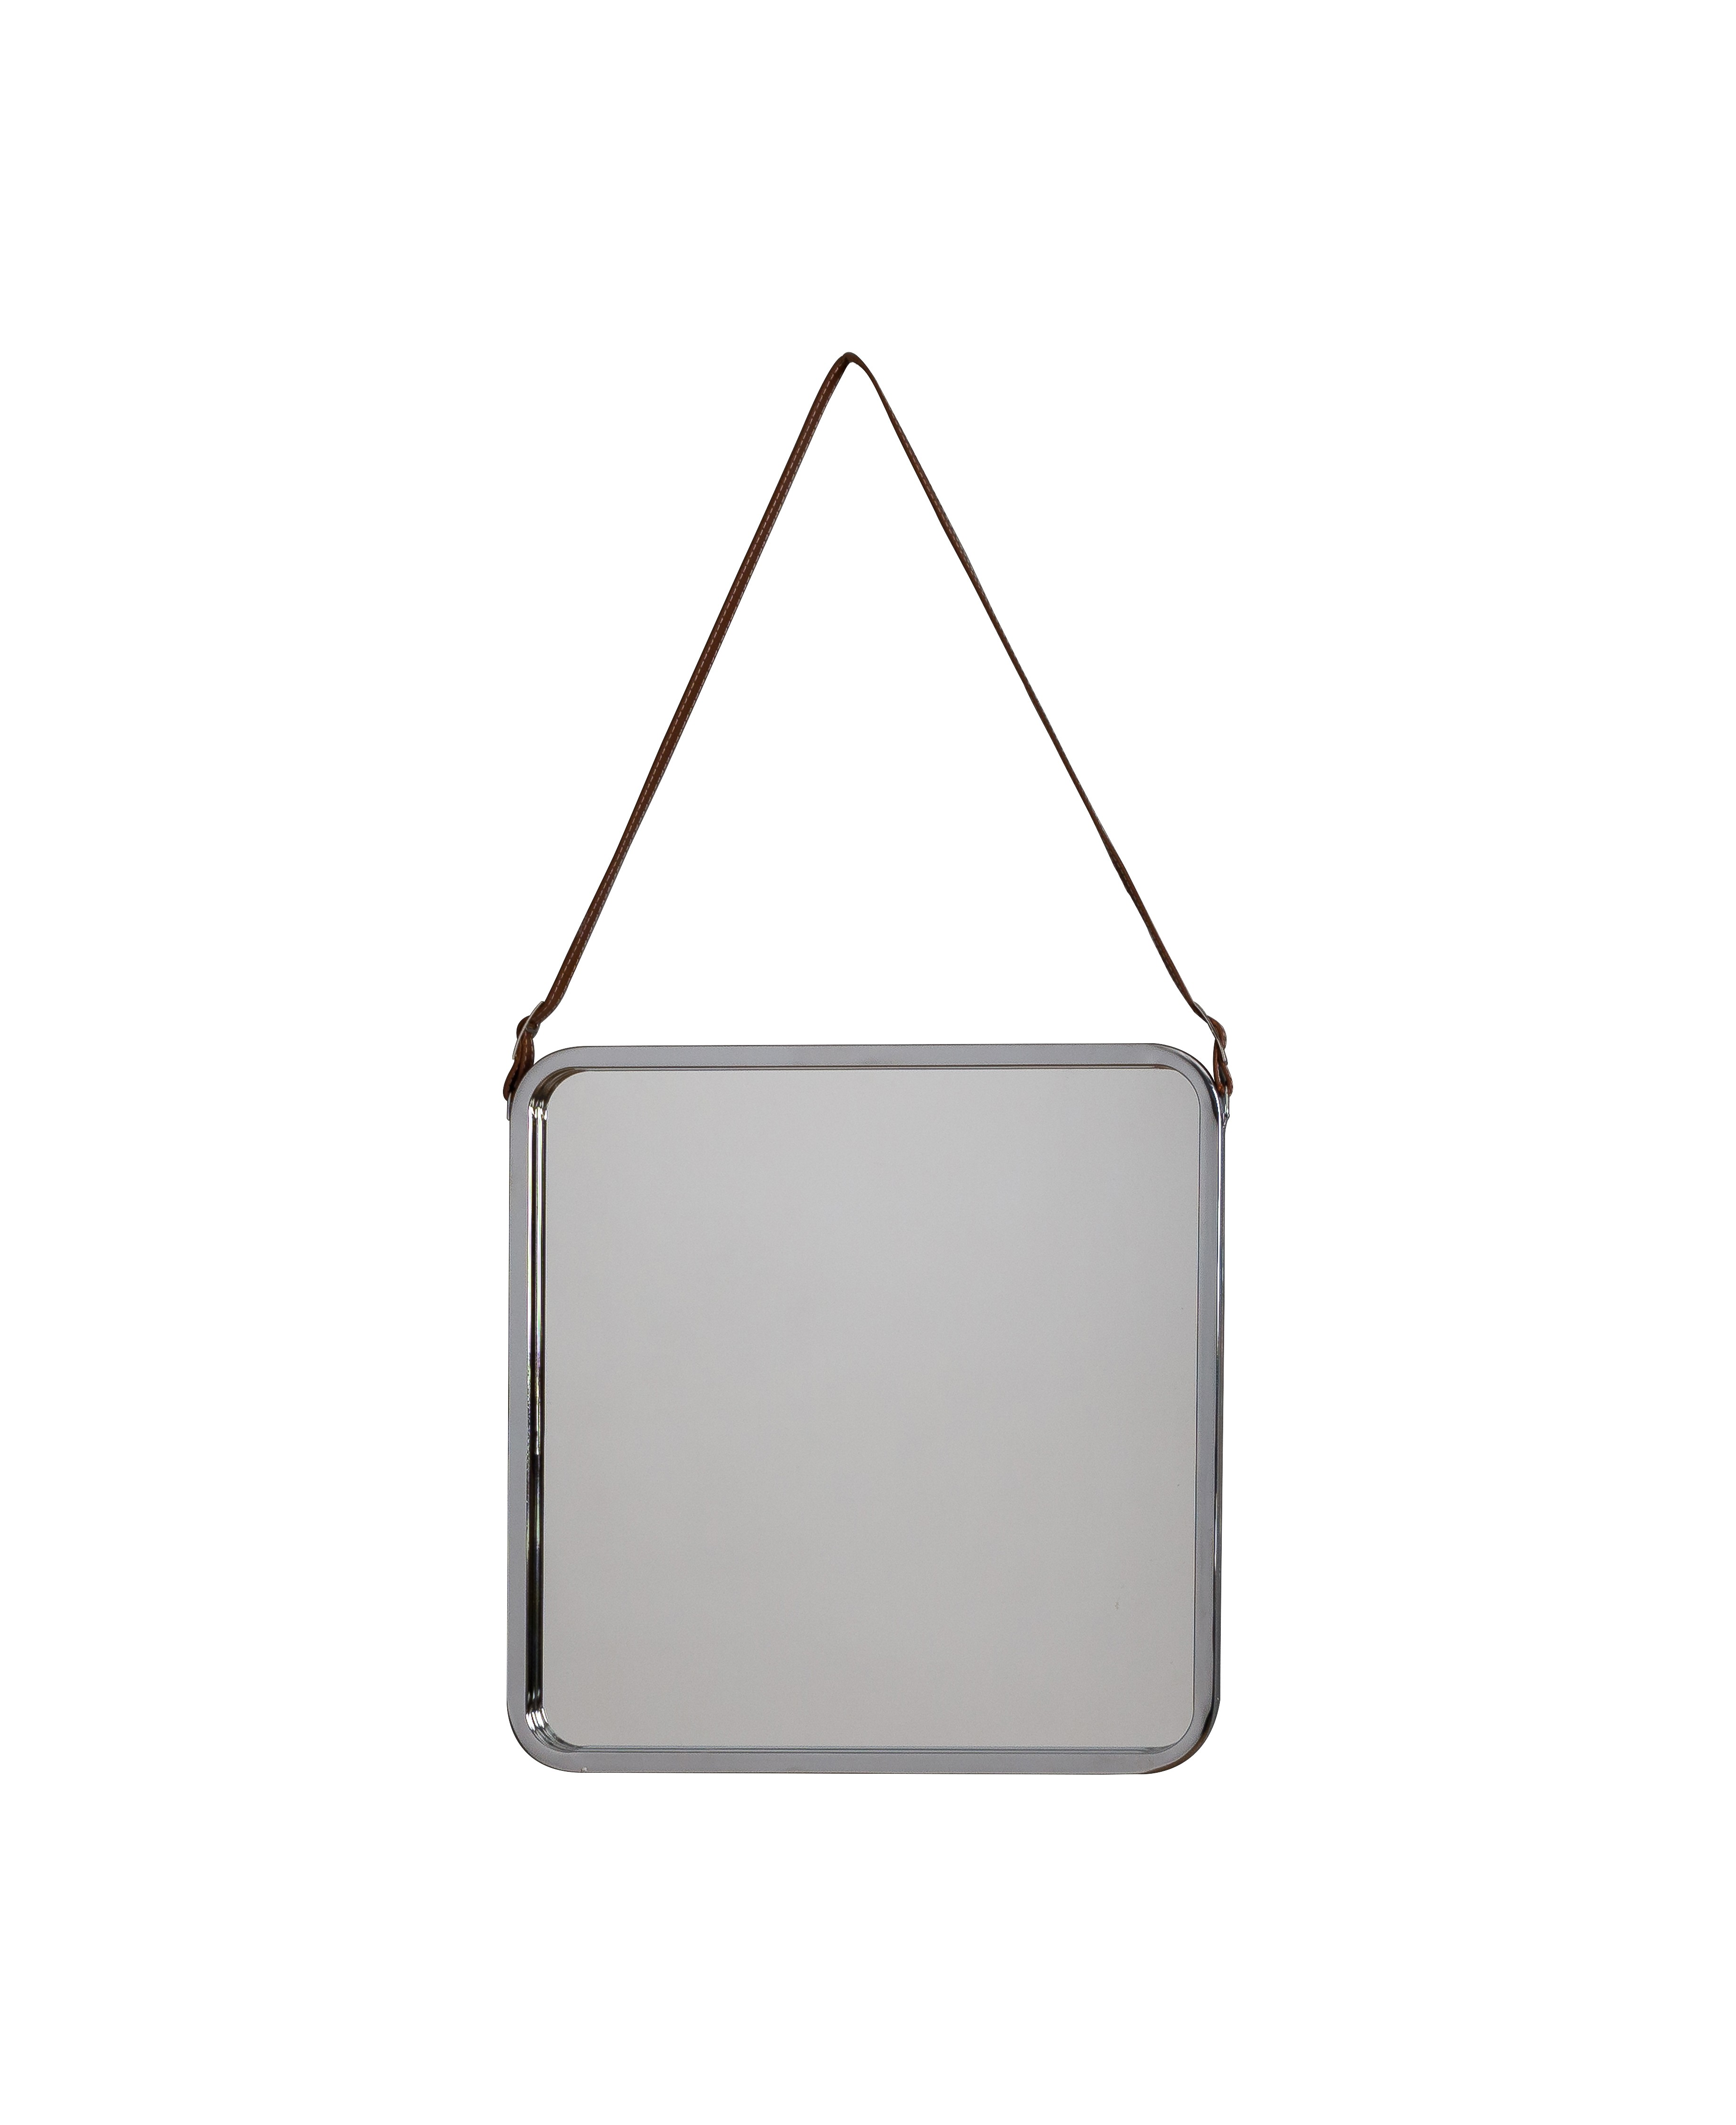 Freda Industrial Square Mirror